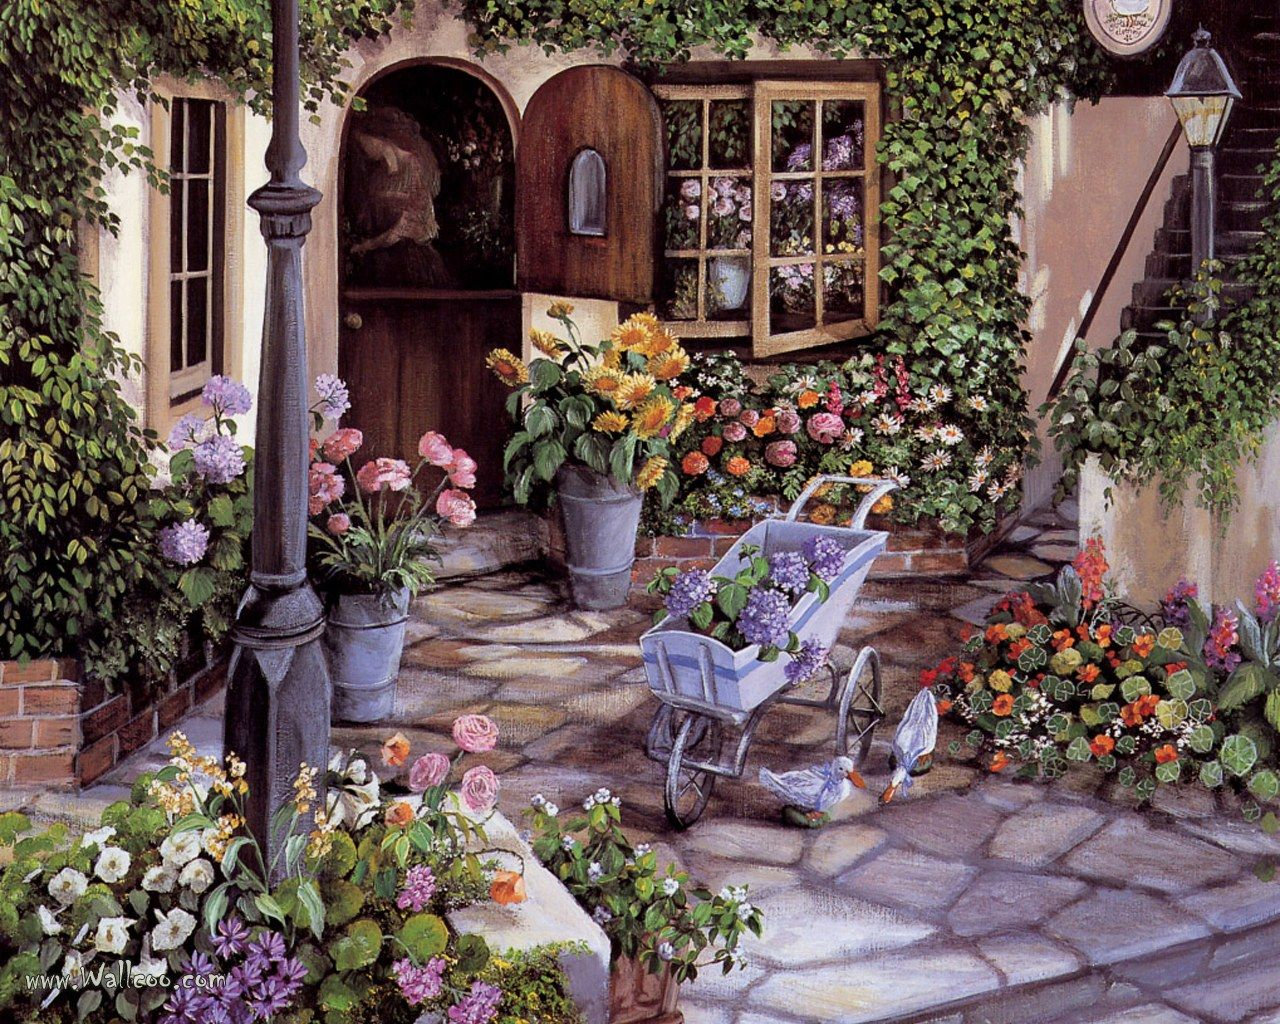 Phoebe's Enchanting Flower Shop - Susan Rios